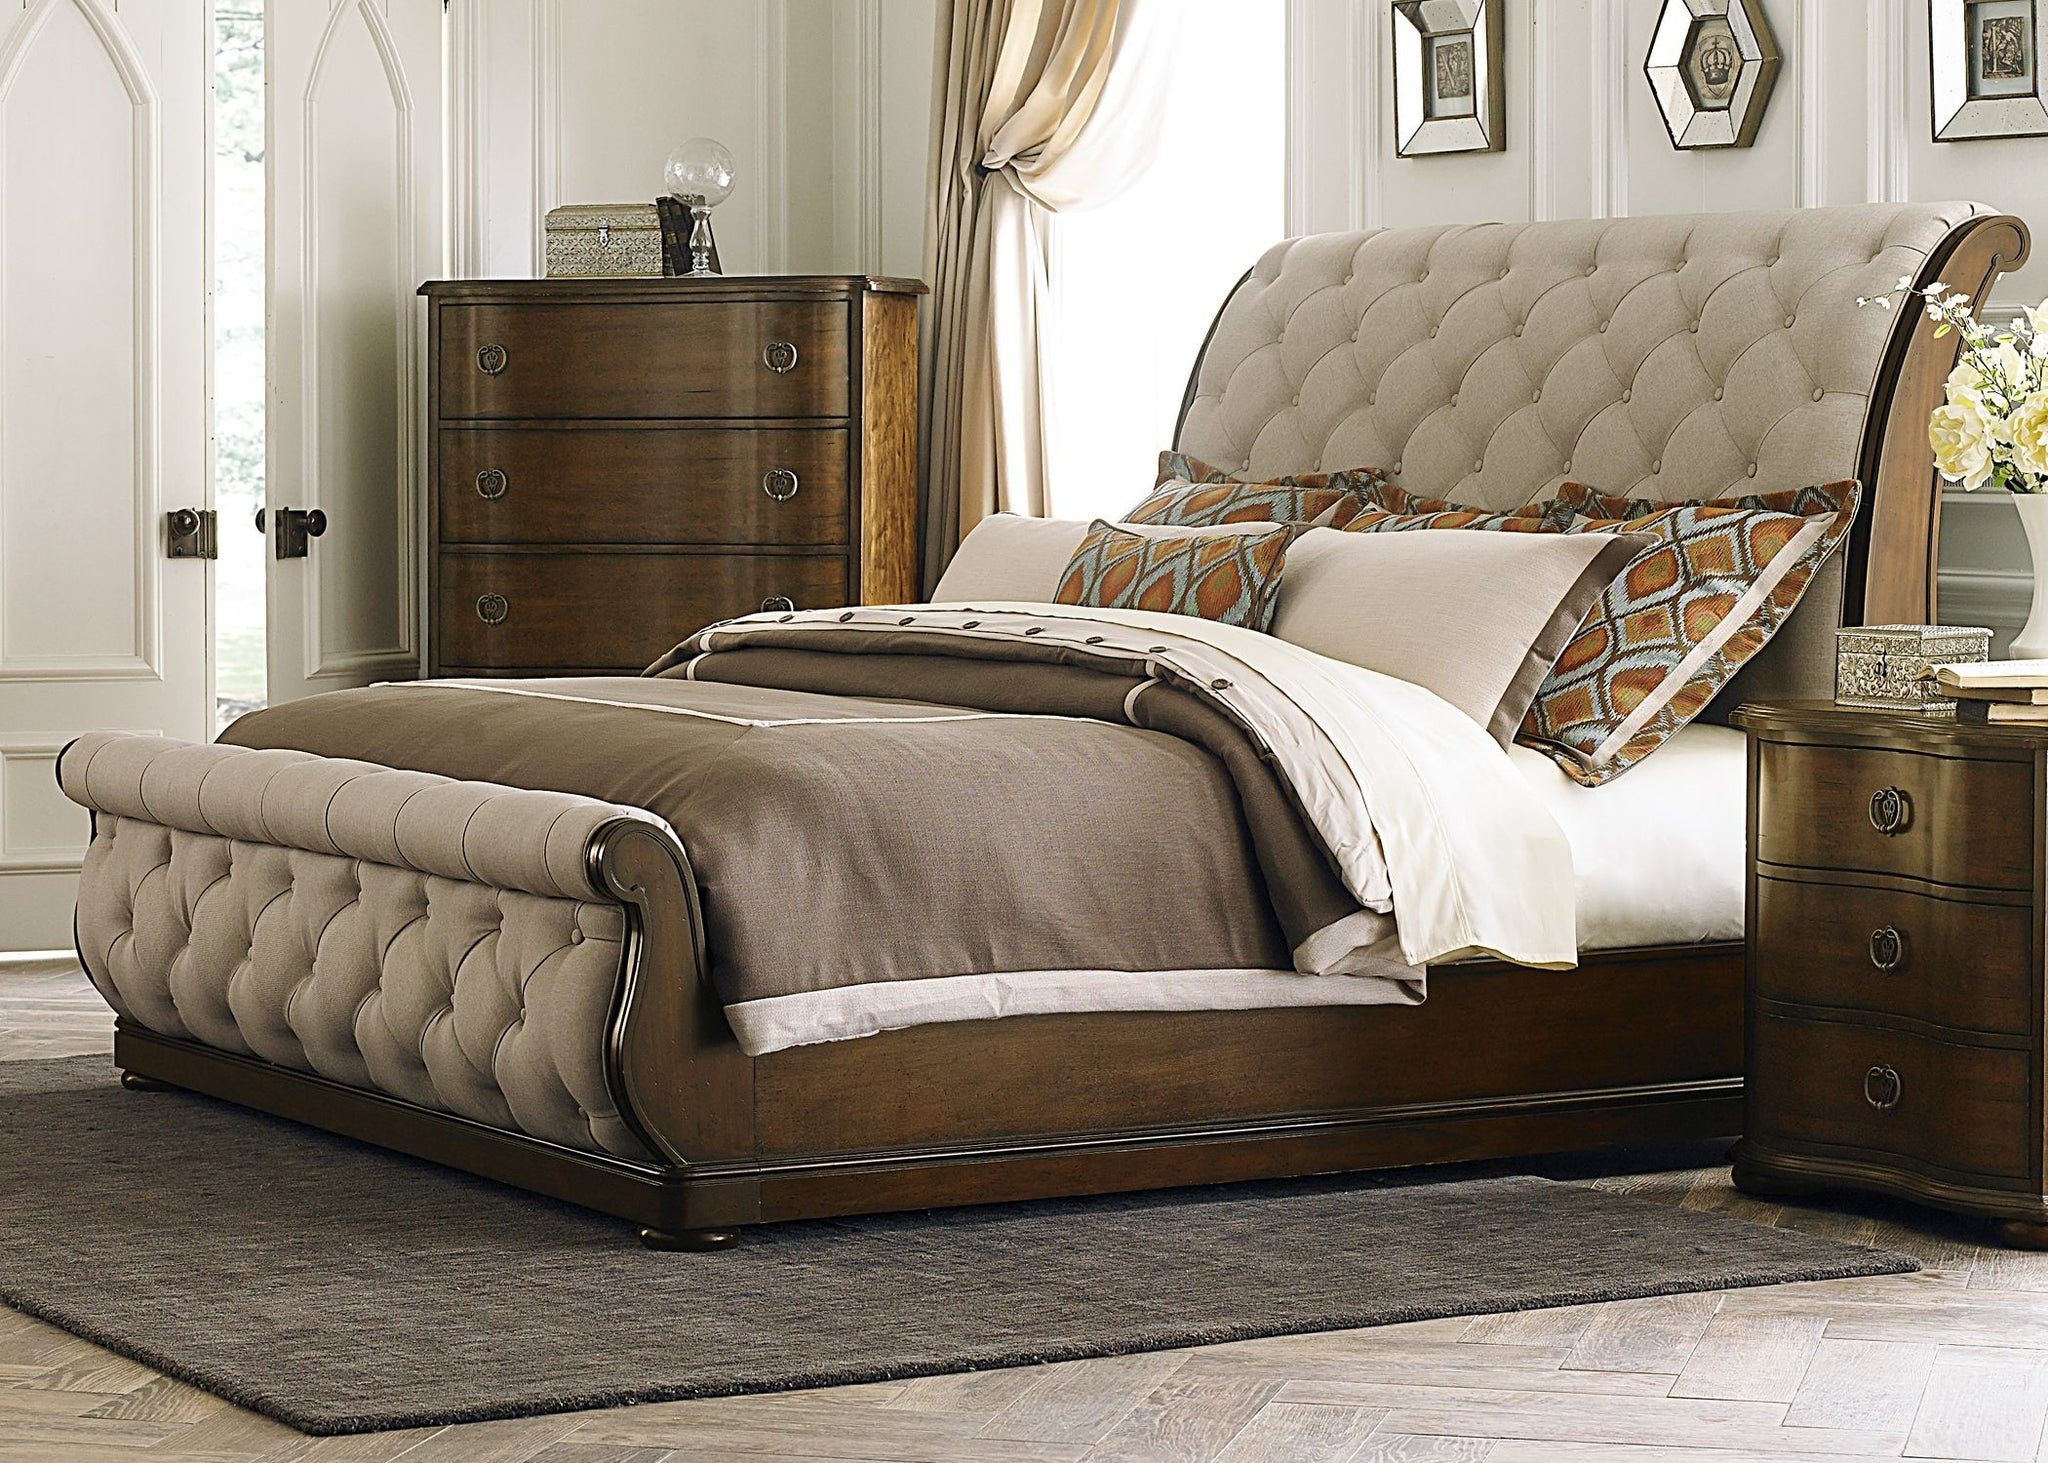 Awesome Sleigh Bedroom Sets Set